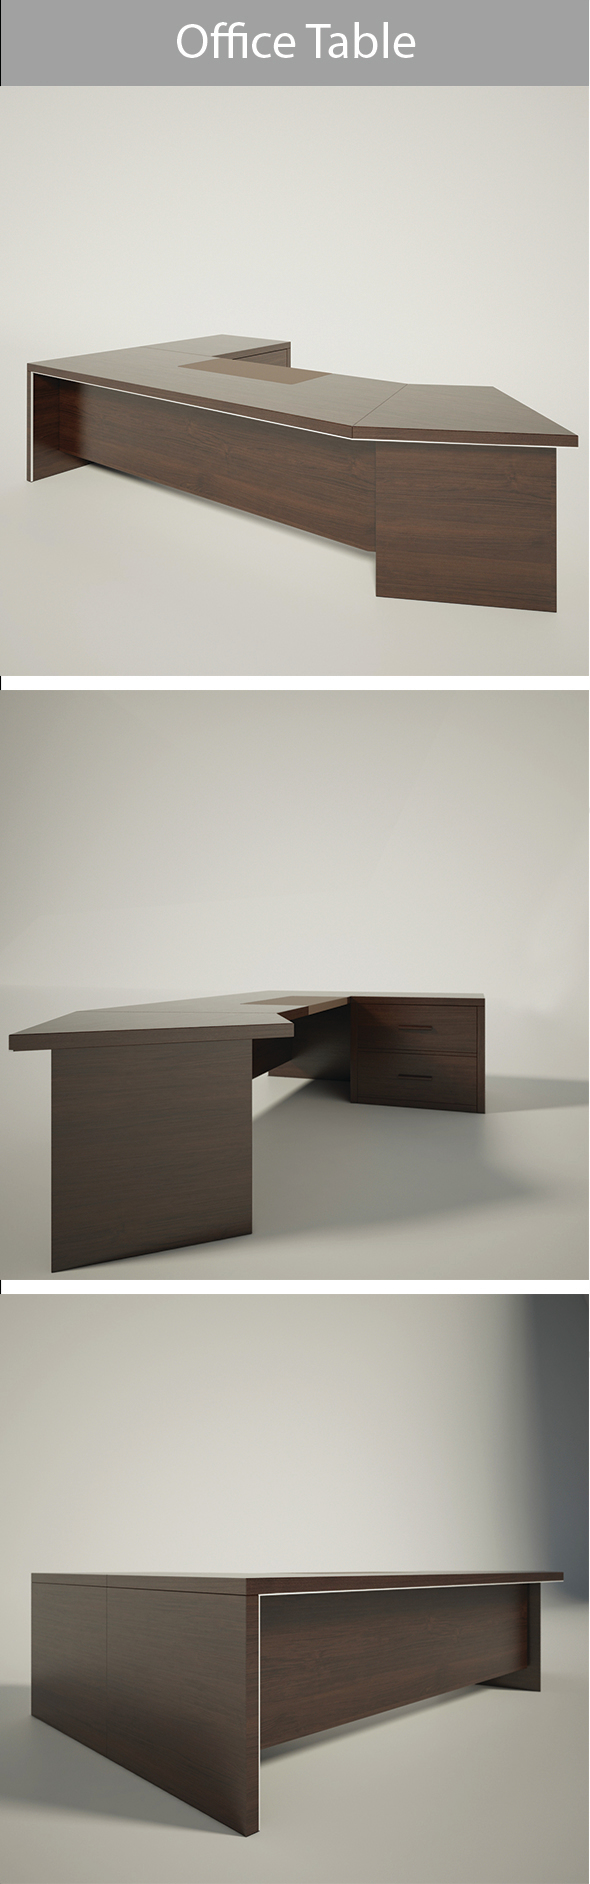 Office Table_01 - 3DOcean Item for Sale